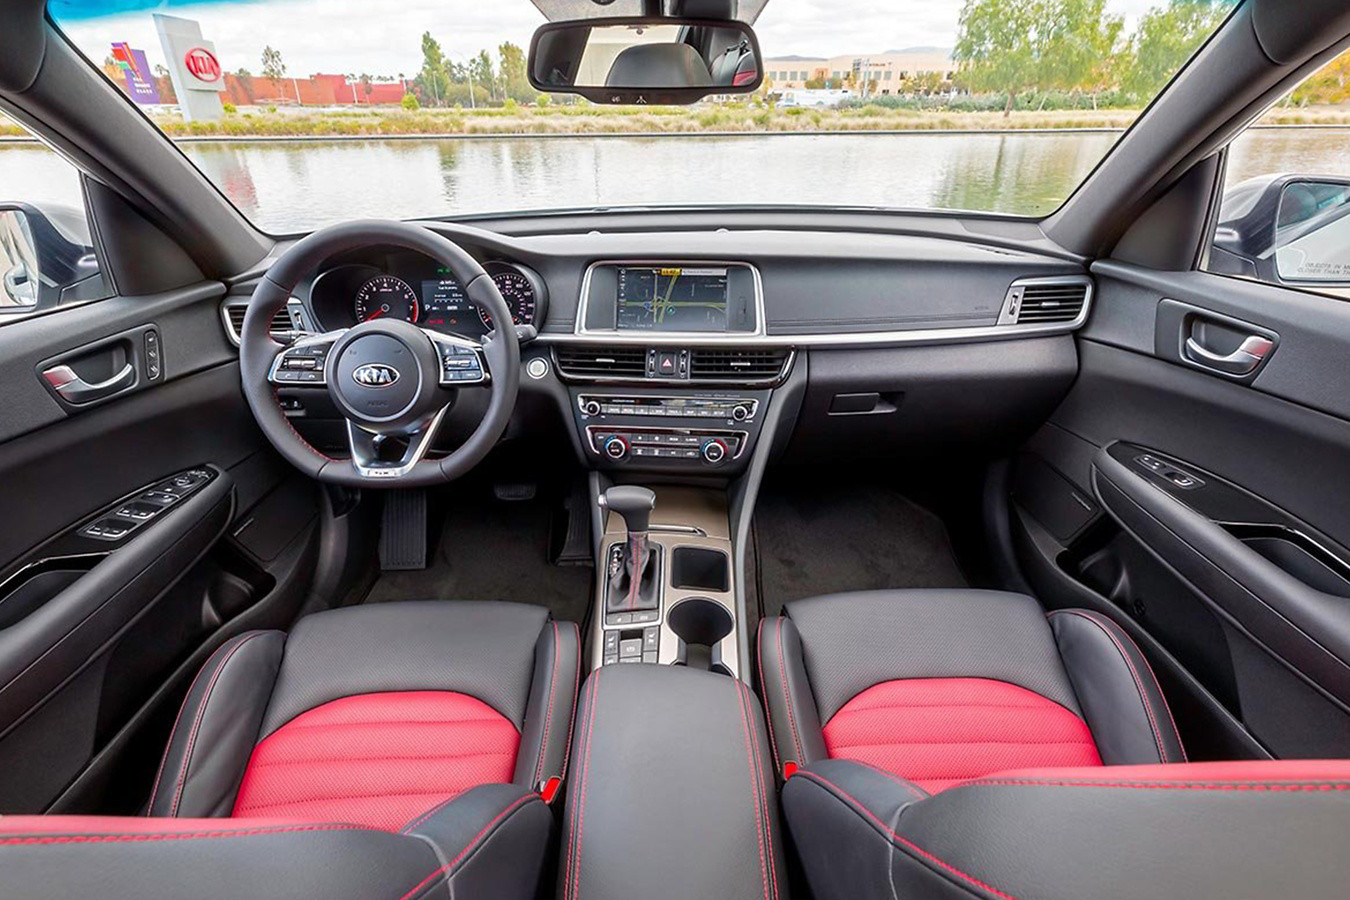 Interior of the 2020 Kia Optima